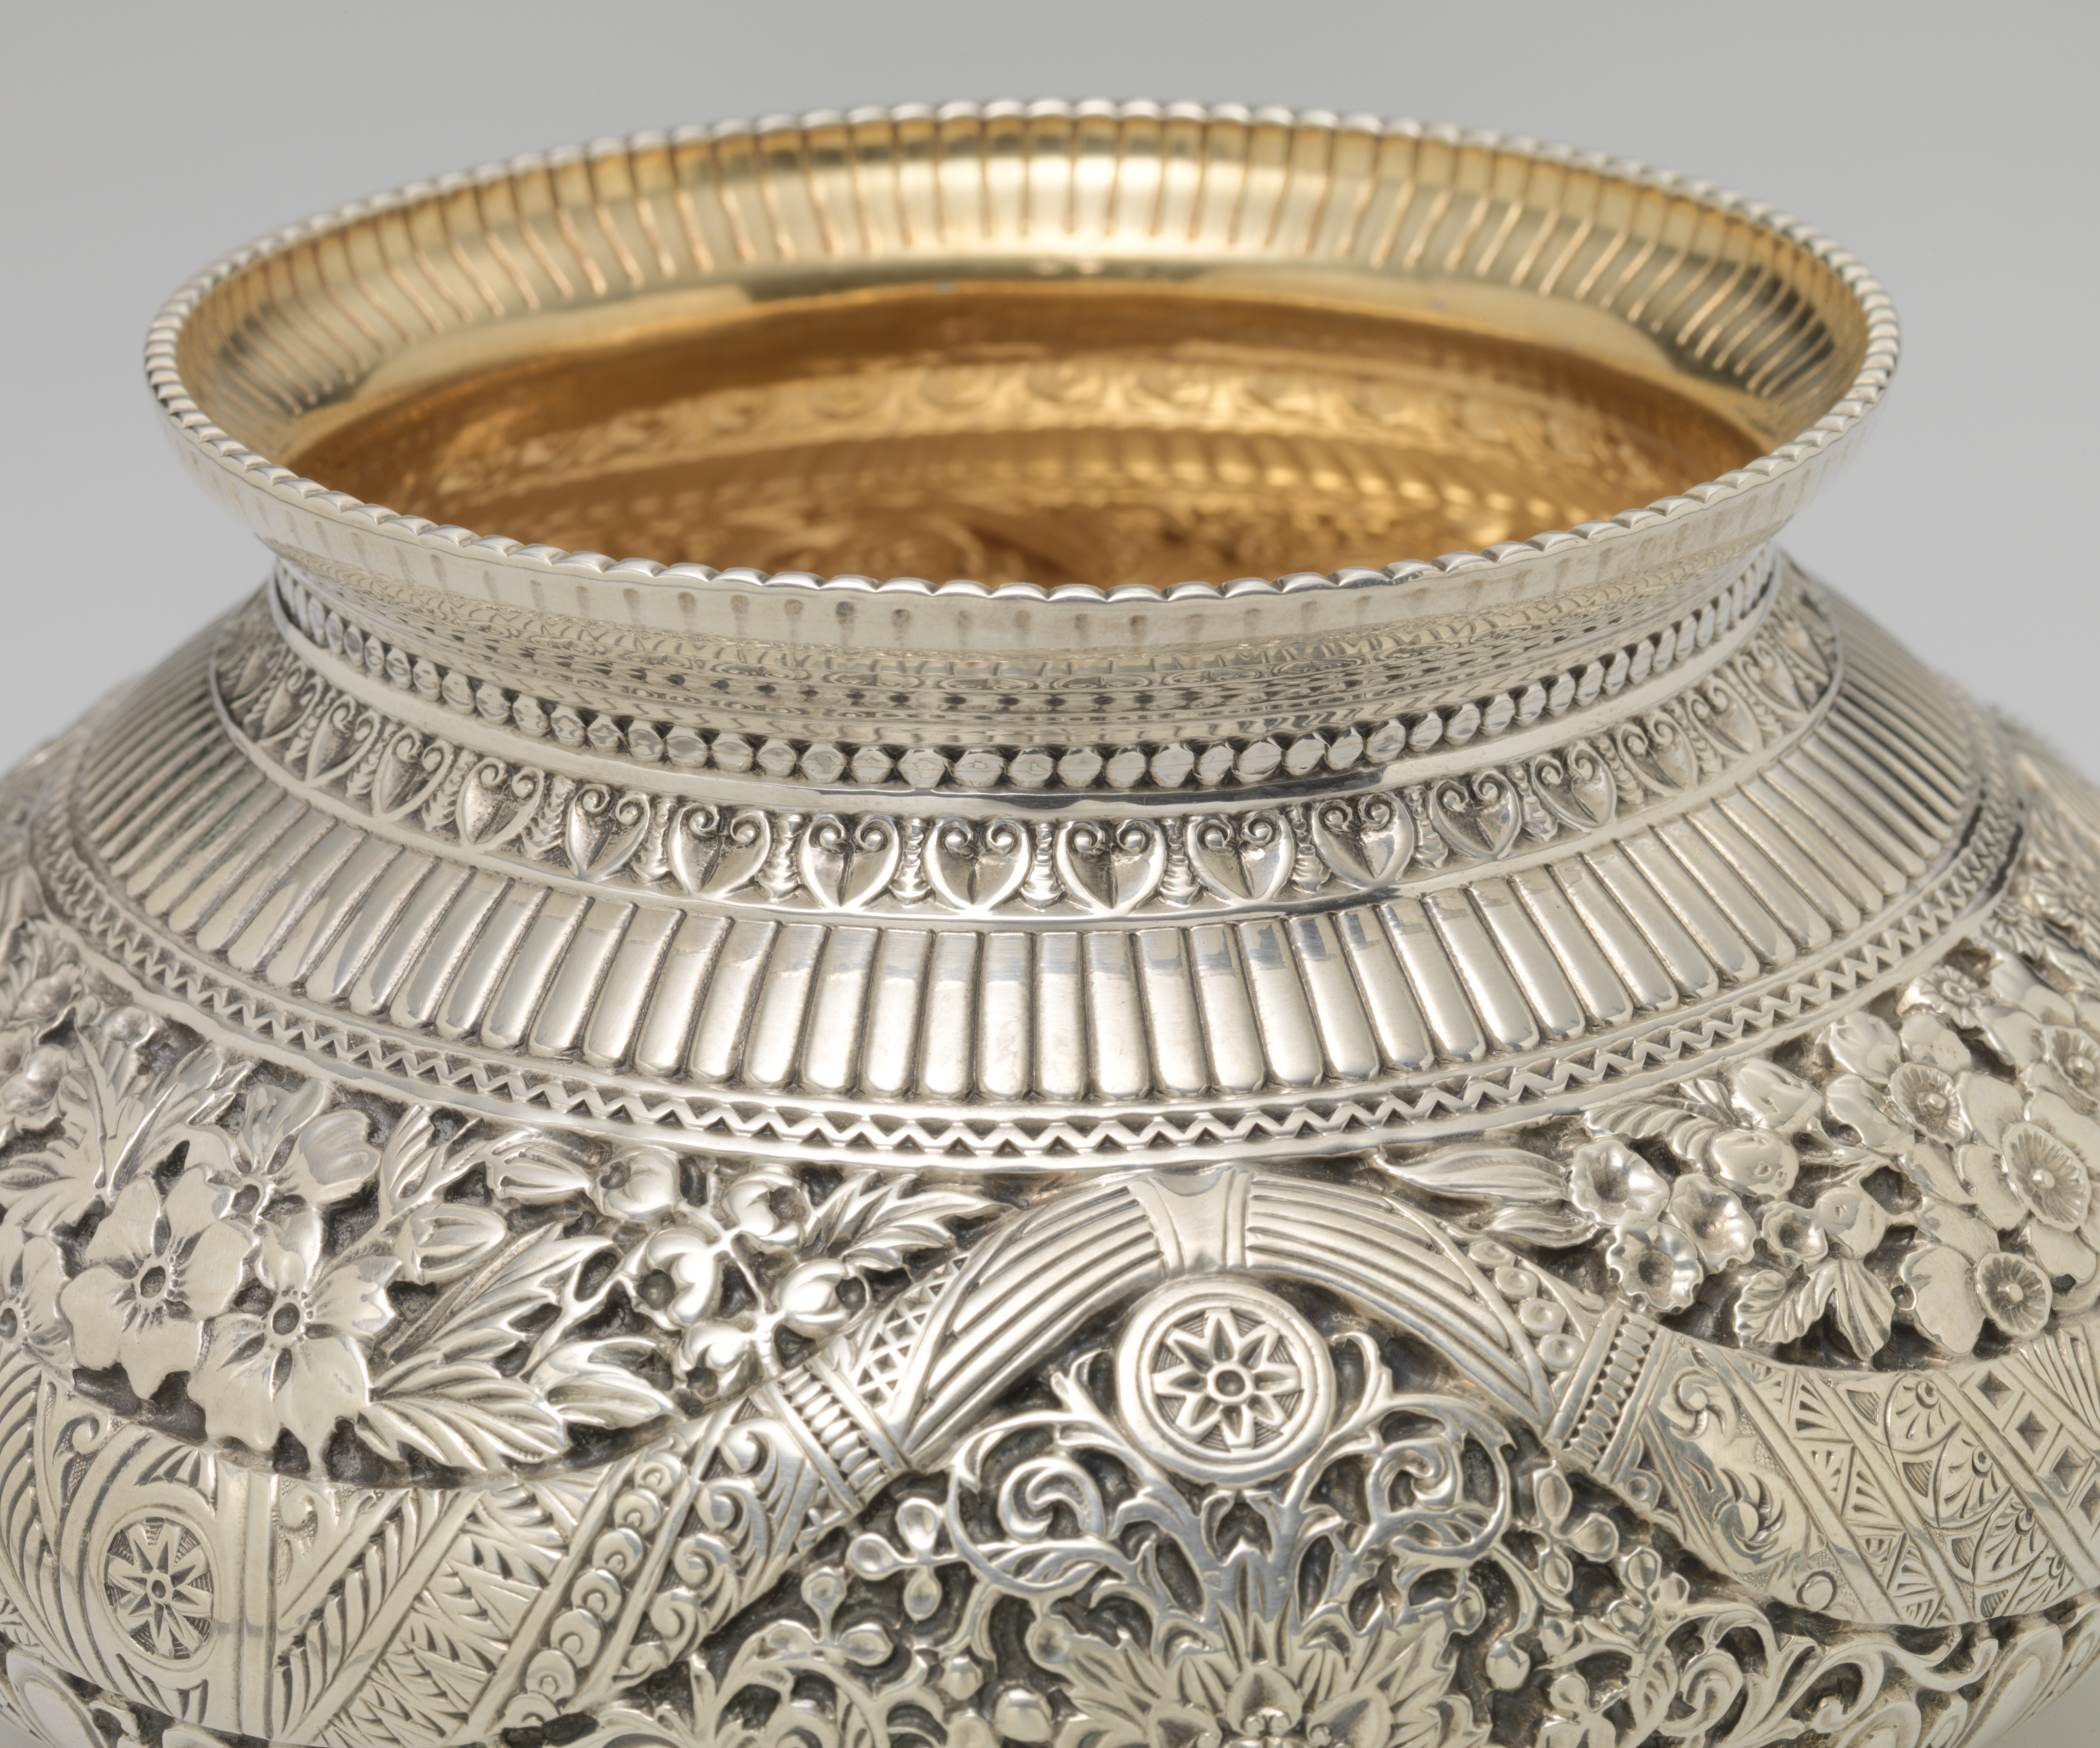 Gorham Manufacturing Company, Waste Bowl, 1886. Elizabeth T. and Dorothy N. Casey Fund. RISD Museum, Providence, RI.